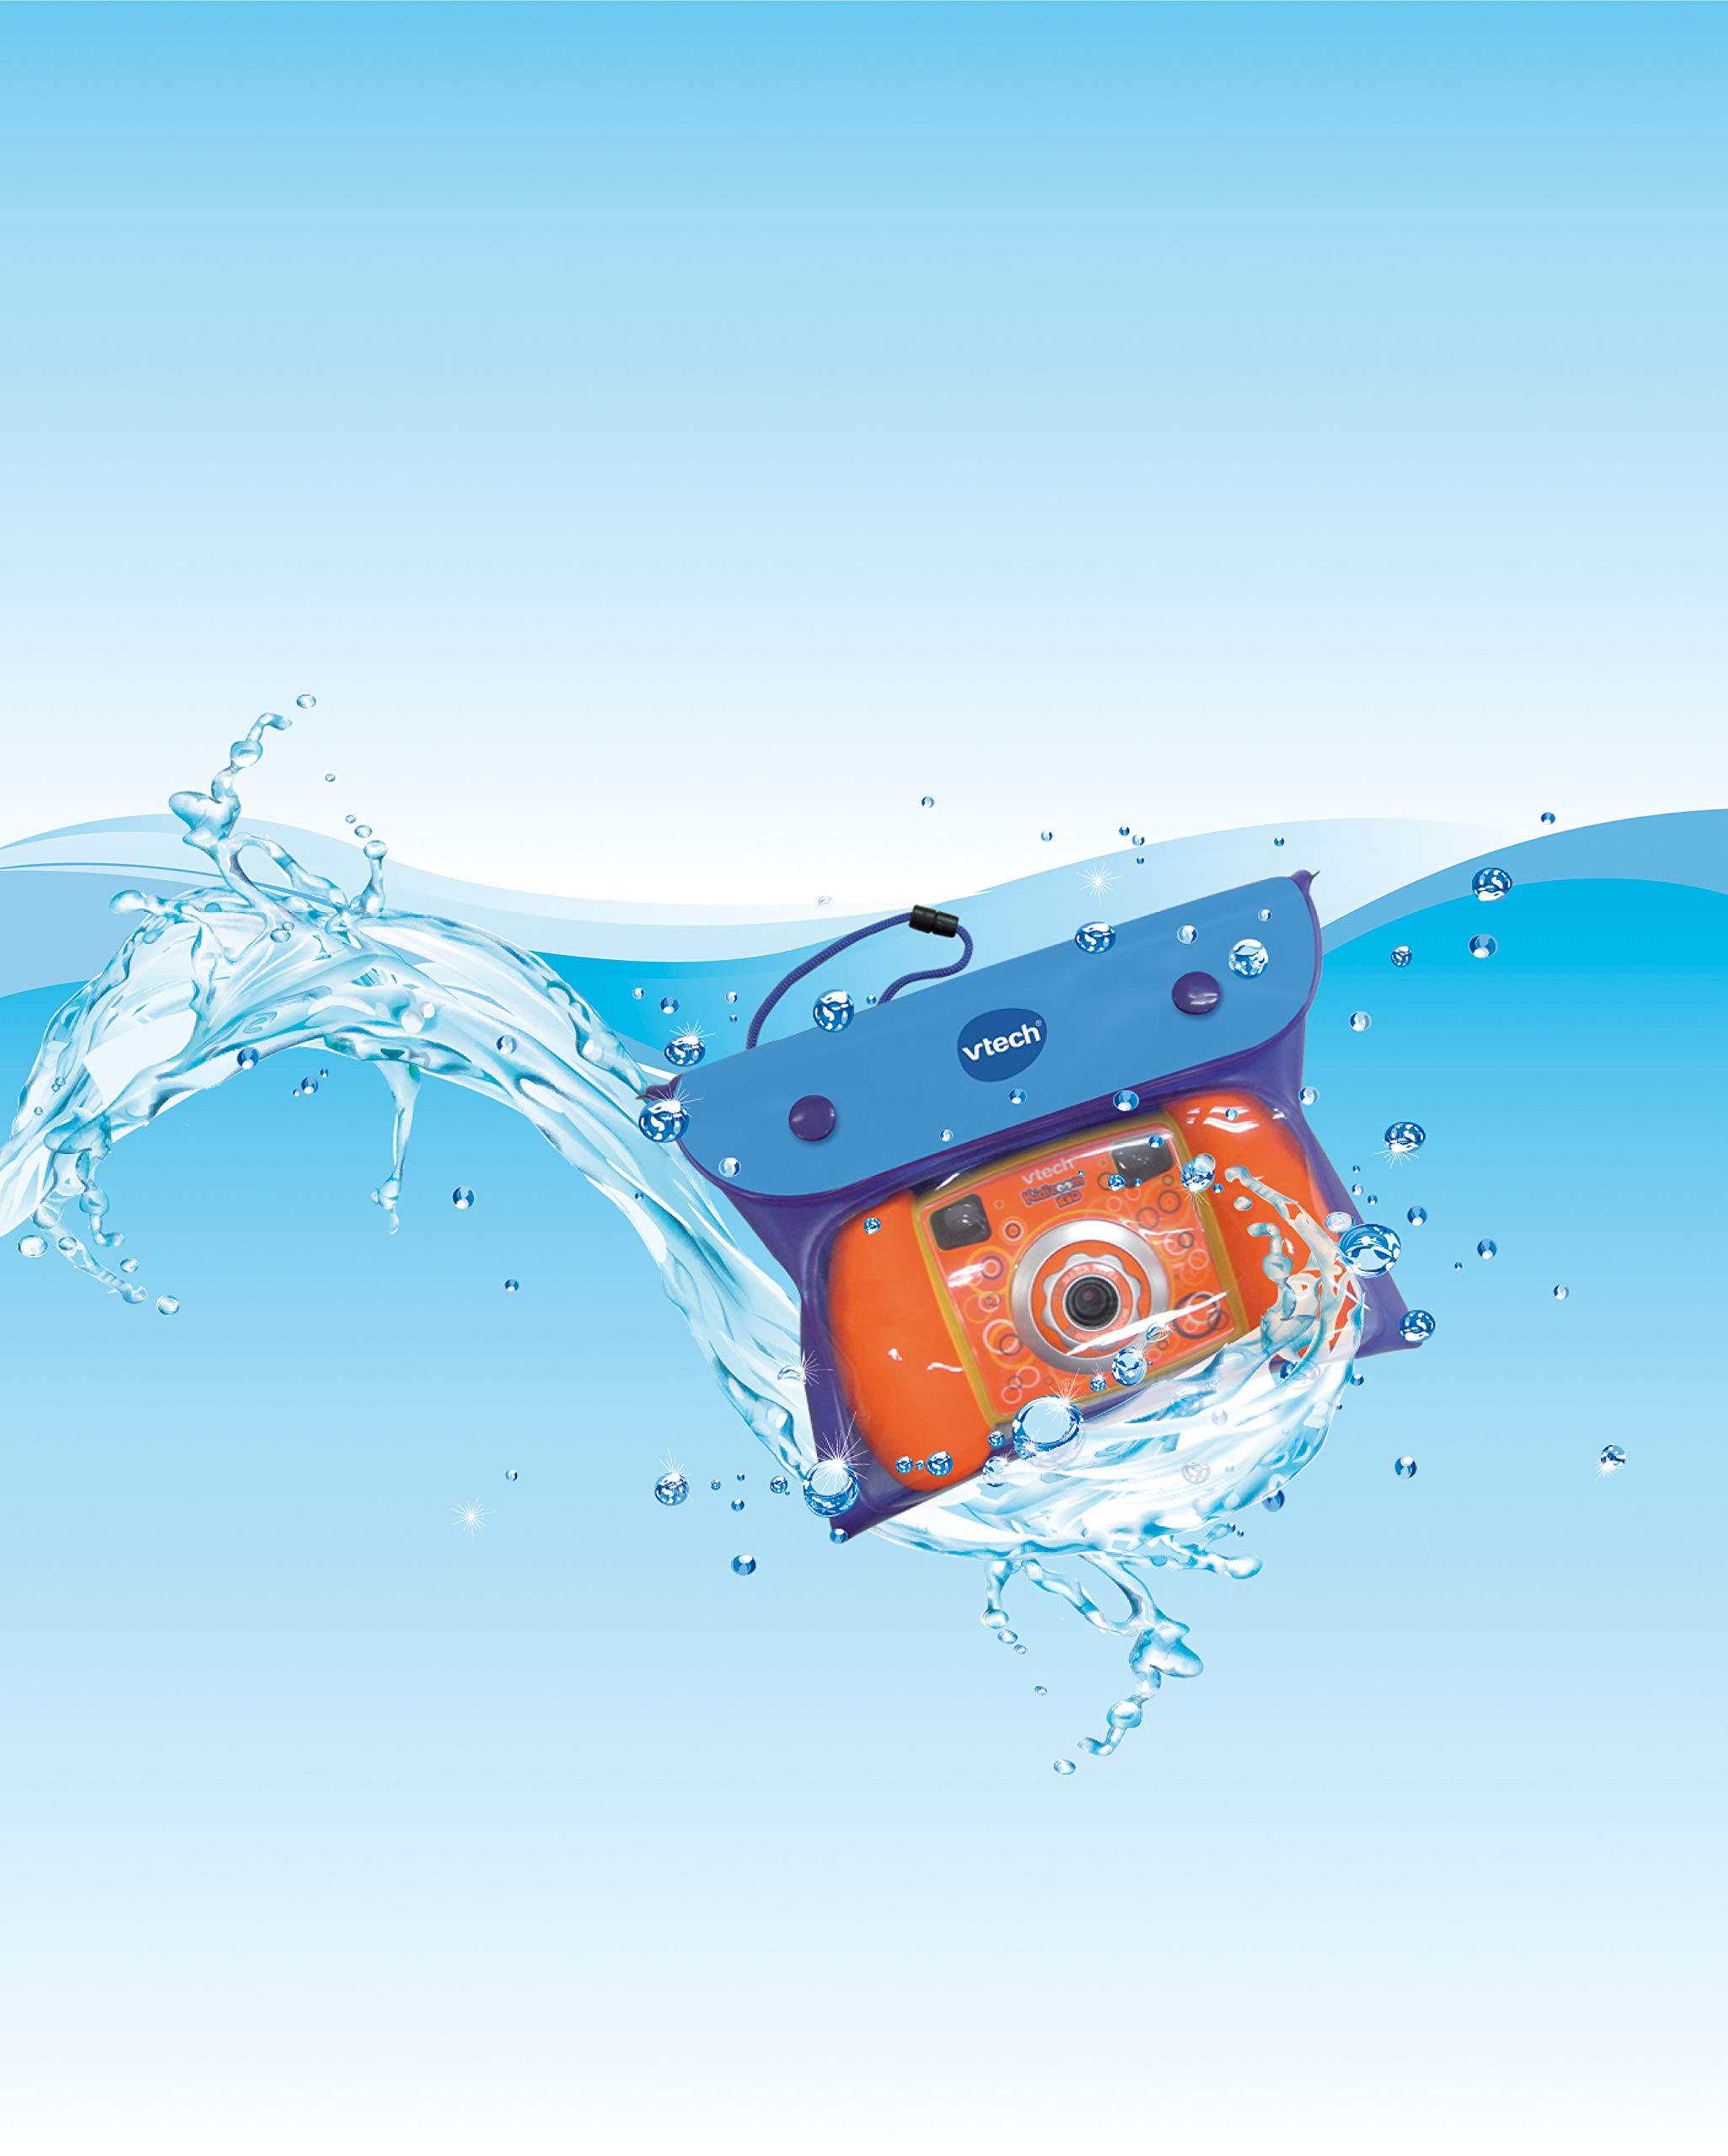 VTech Cooltronic-Waterproof Case Kidizoom 80-204805 by VTech (Image #3)